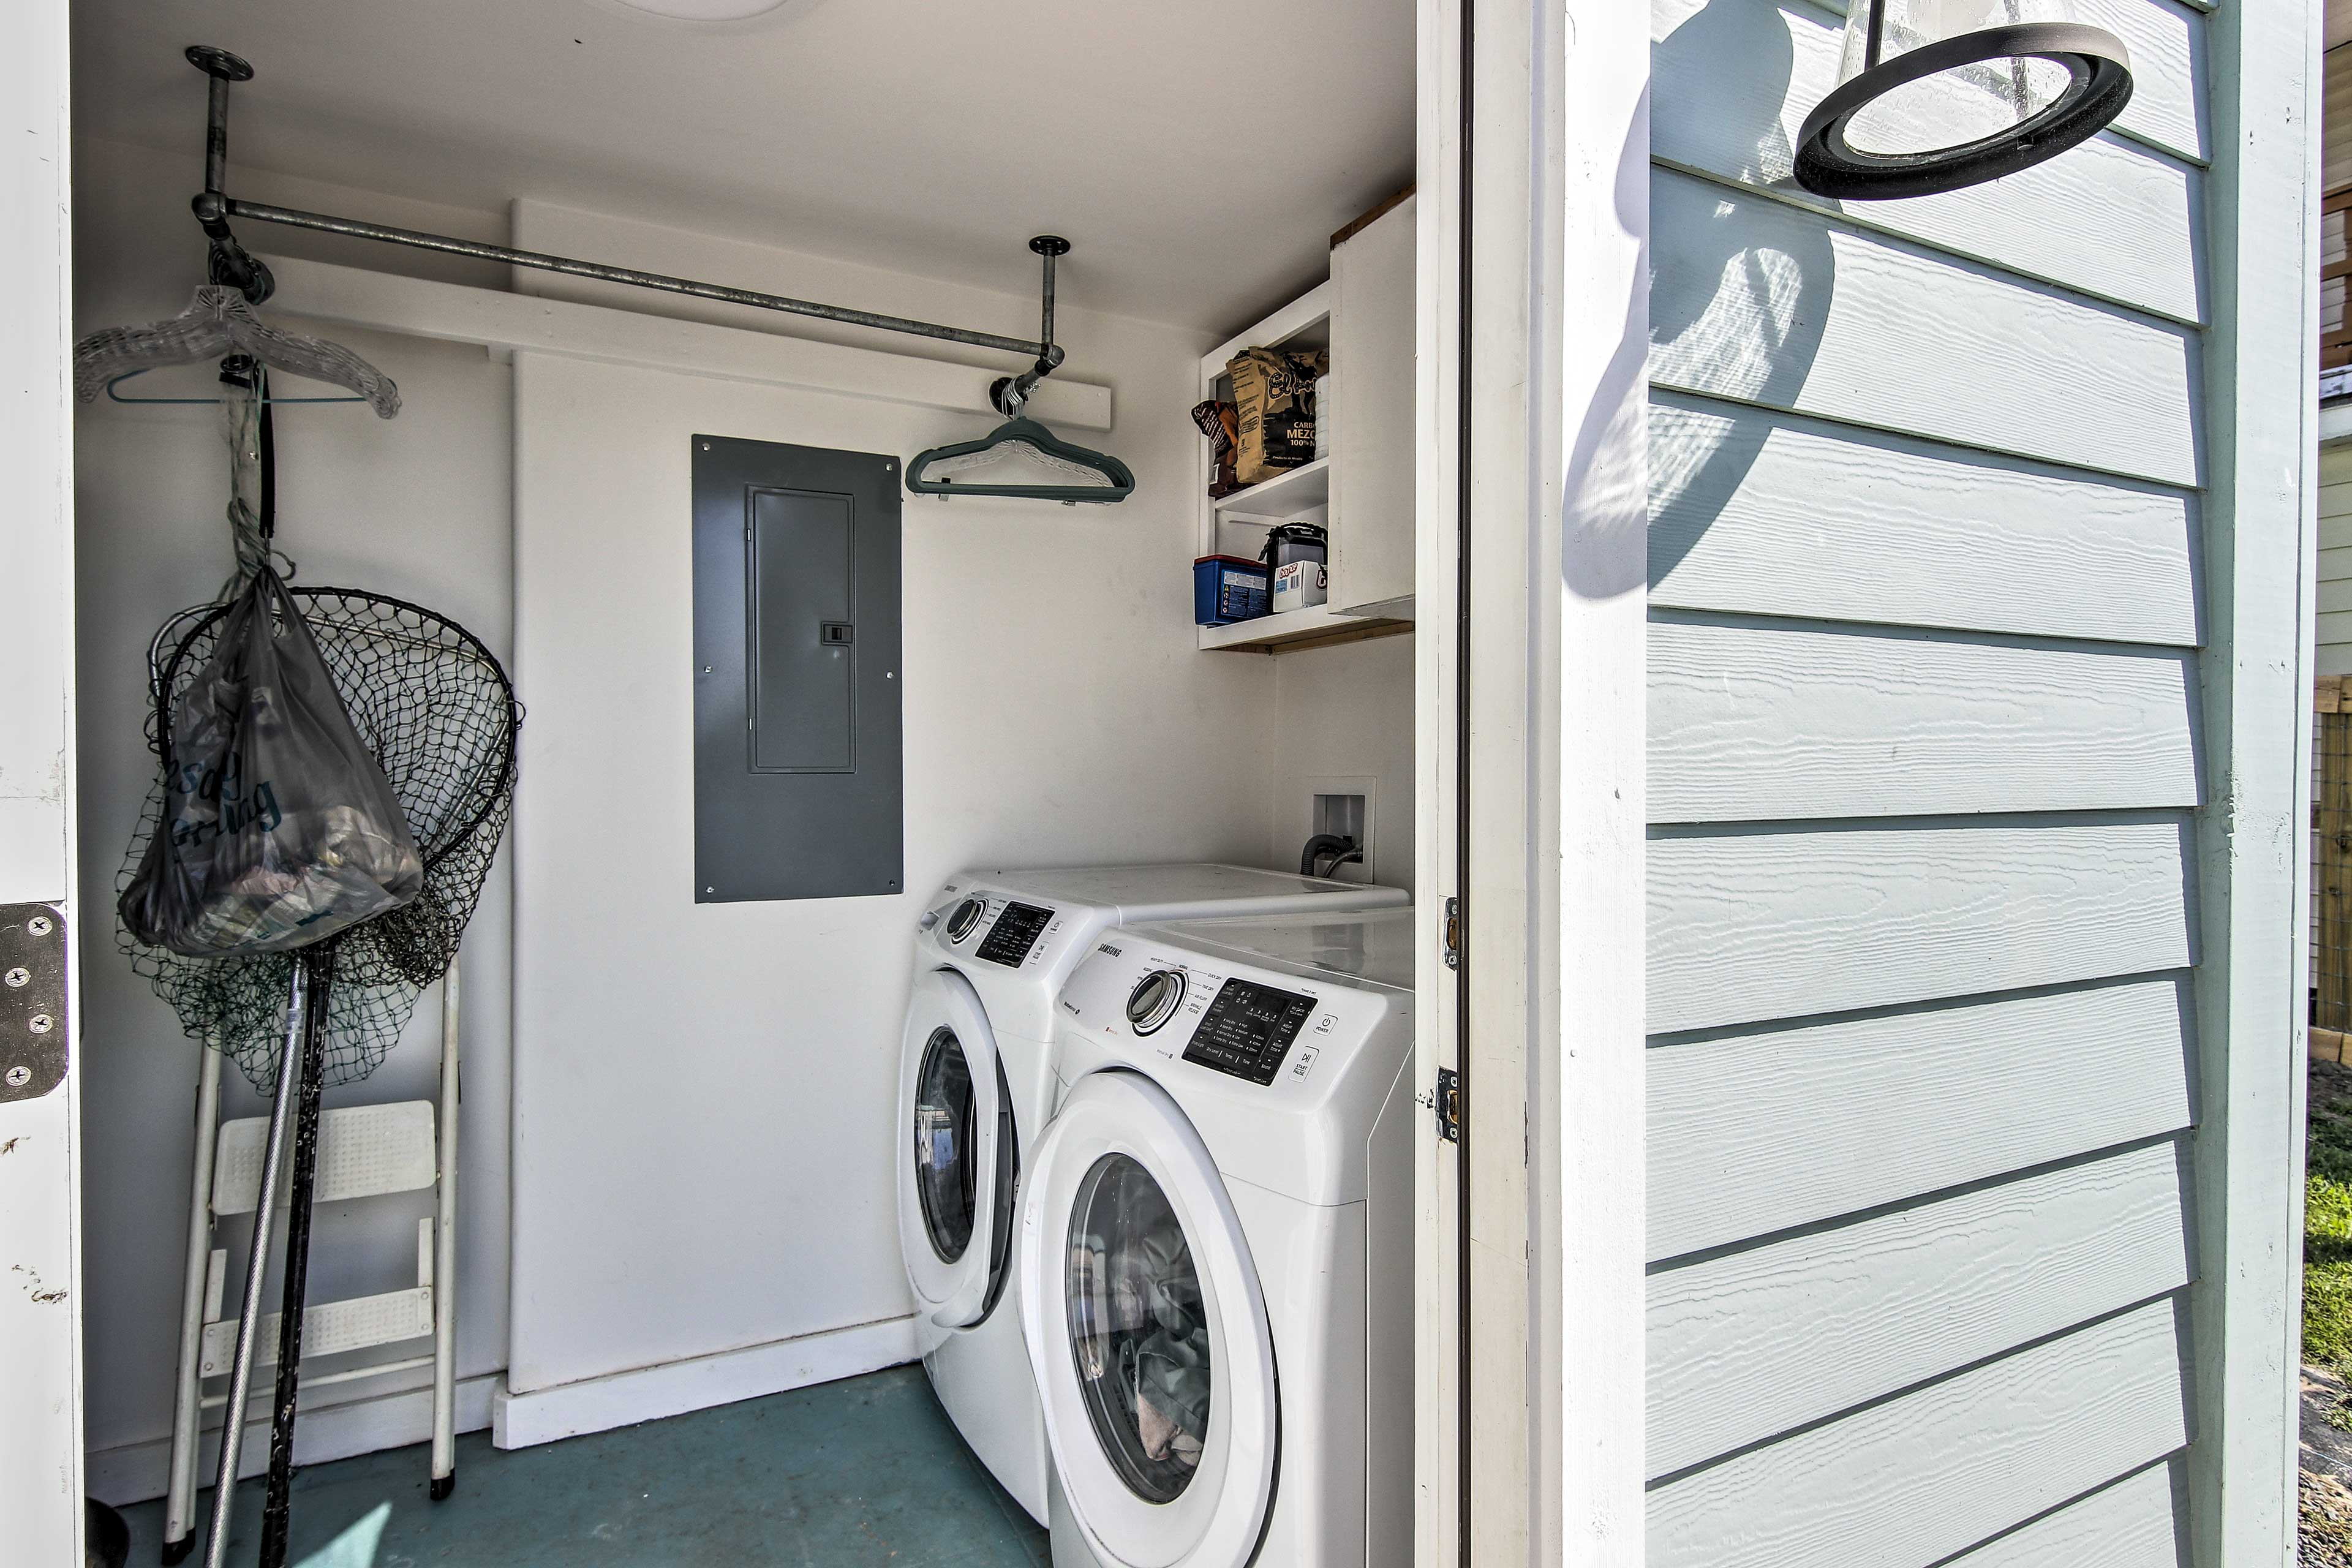 The shared laundry will keep your clothes fresh!